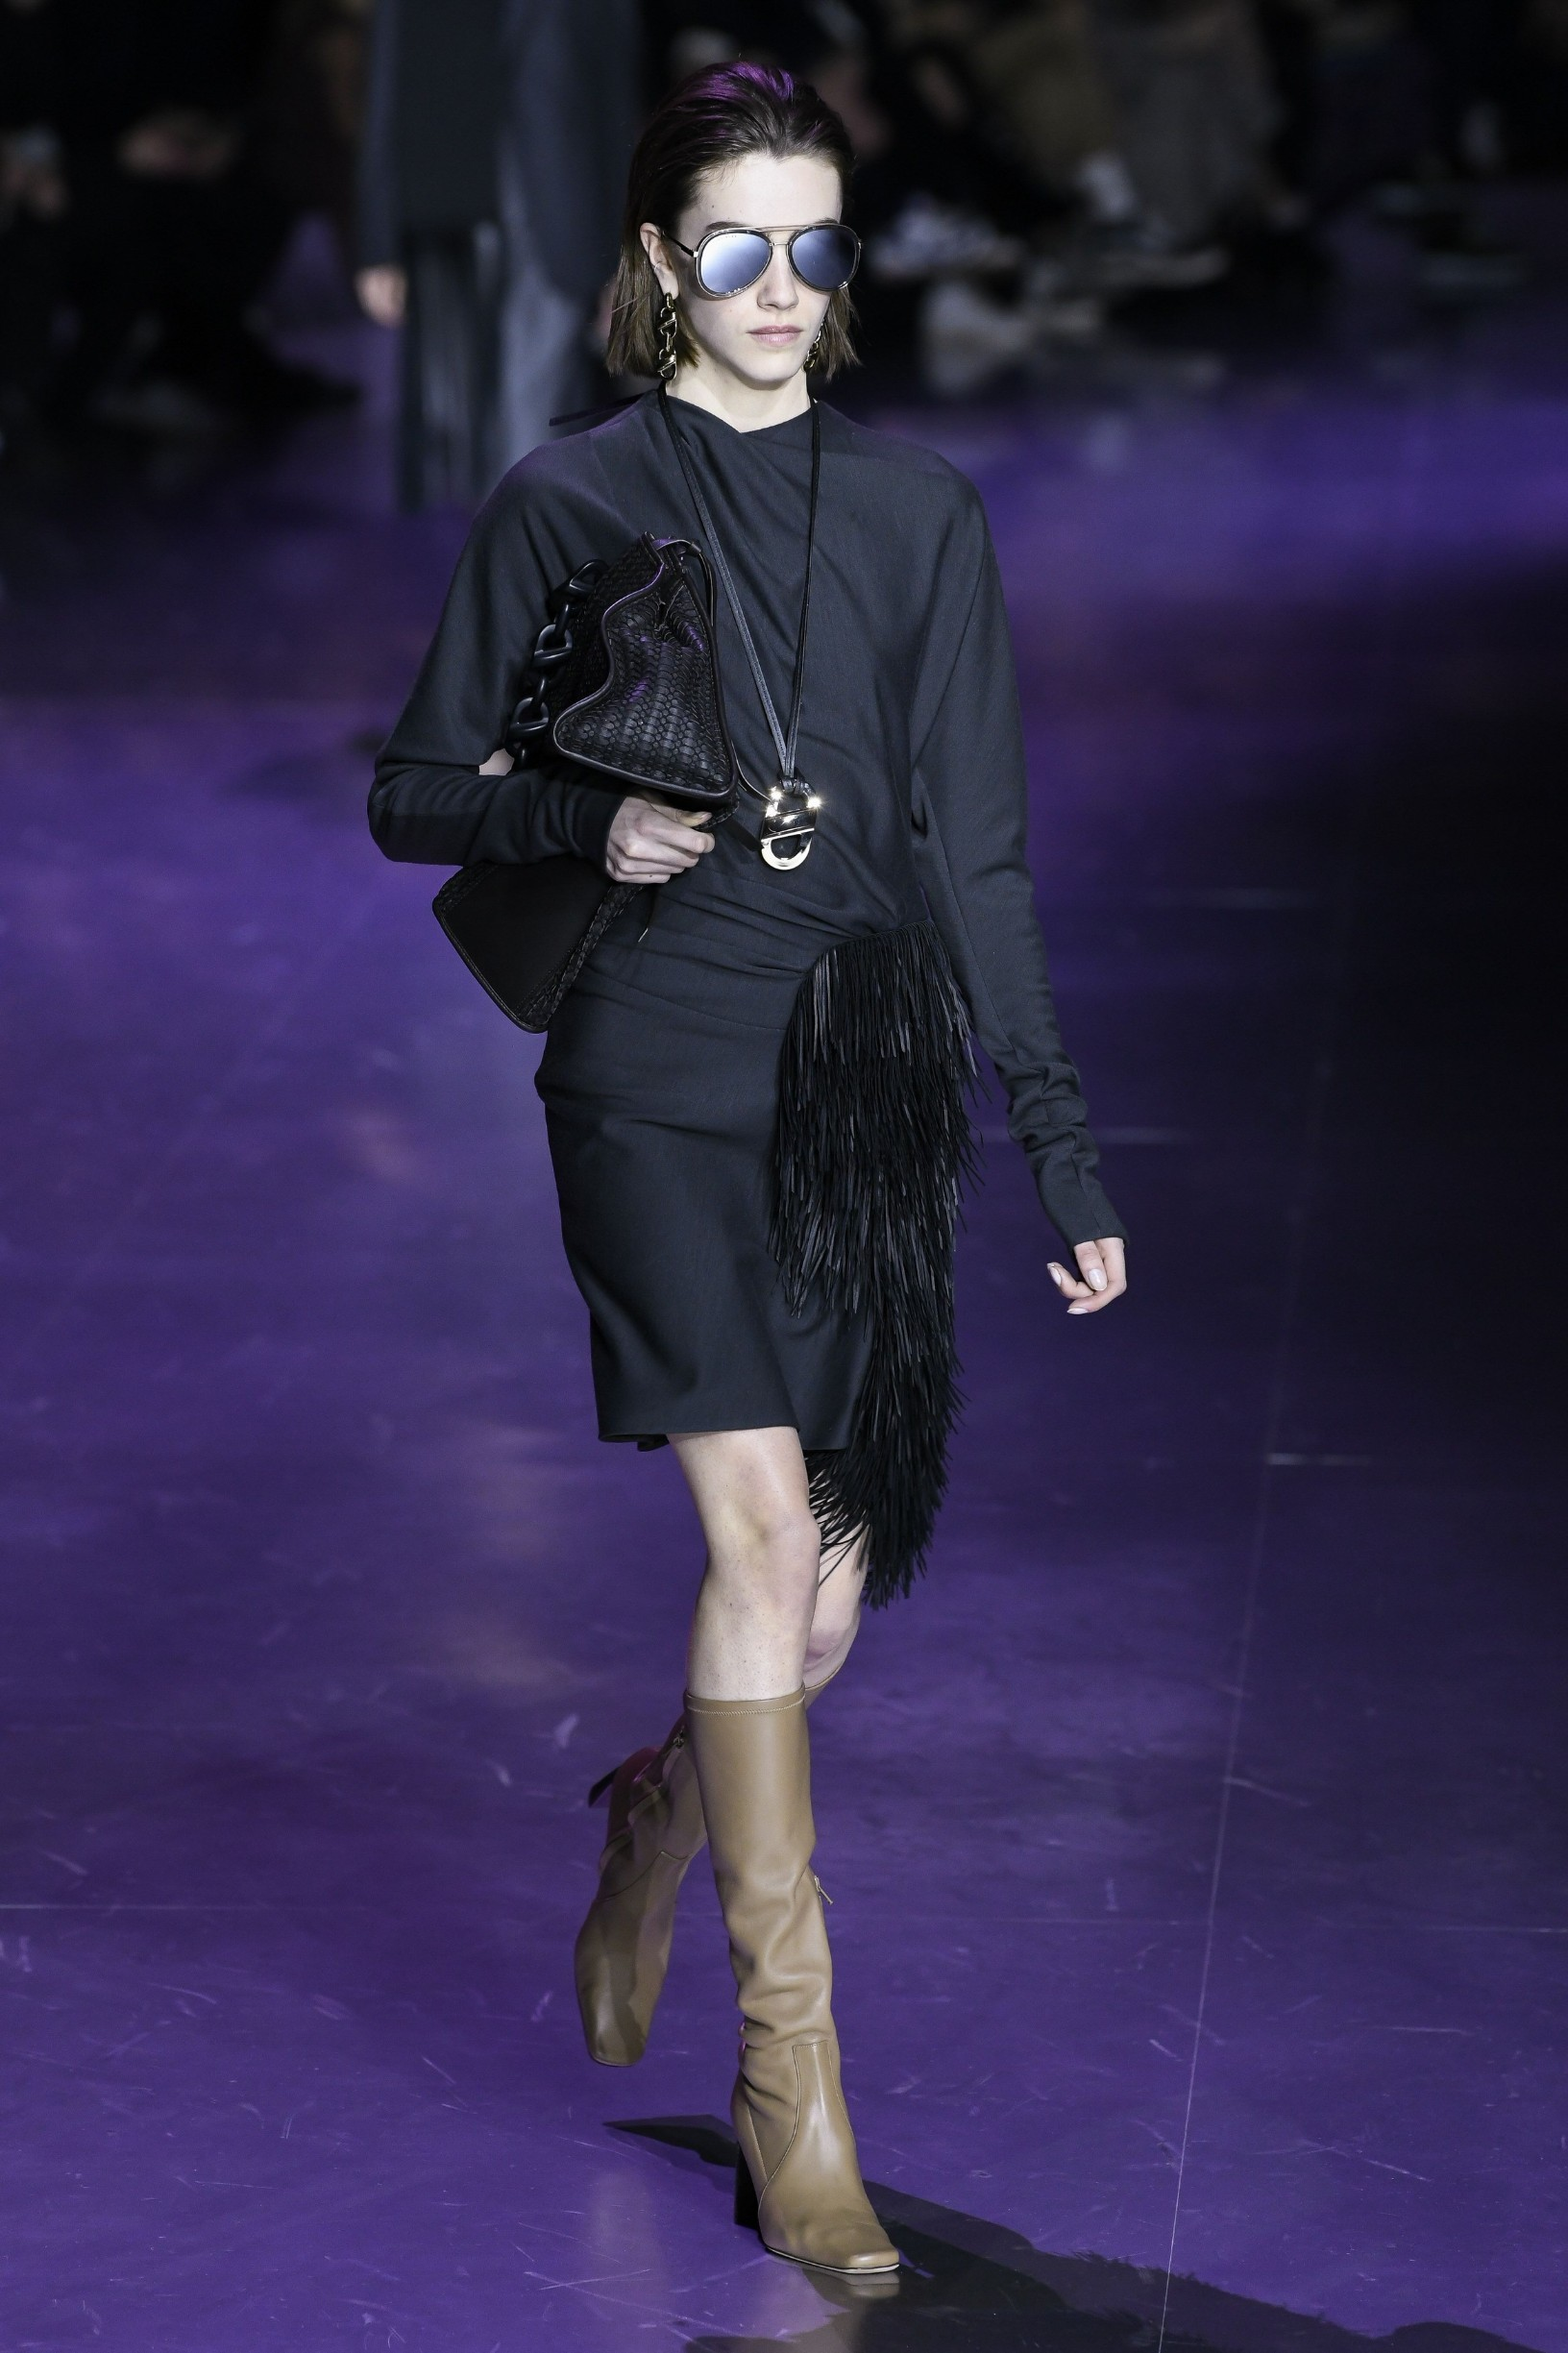 Model wears an outfit as part of the women ready-to-wear autumn winter 2020 2021, women fashion week, Milan, ITA, from the house of BOSS  //Z-PIXEL-FORMULA_C_103/2002232250/Credit:PIXELFORMULA/SIPA/2002232253, Image: 500550826, License: Rights-managed, Restrictions: , Model Release: no, Credit line: PIXELFORMULA / Sipa Press / Profimedia